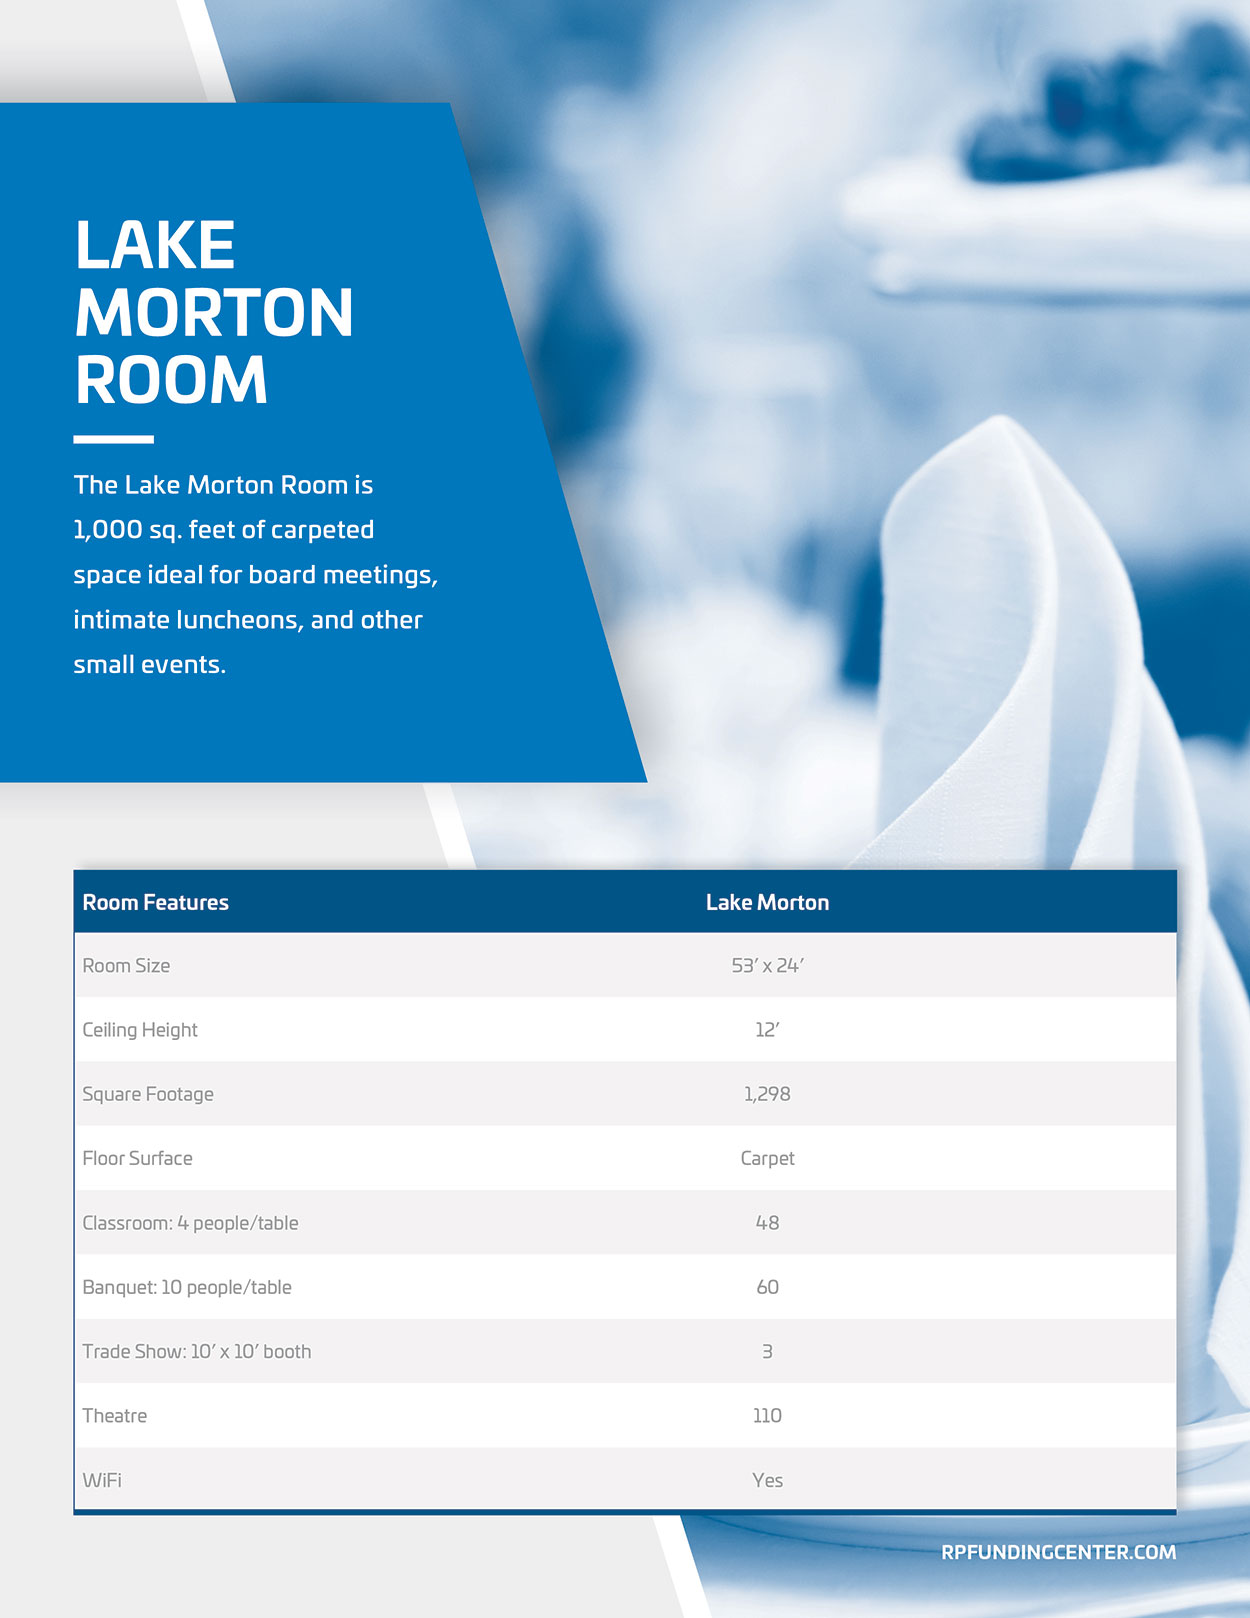 LakeMorton Room Specs